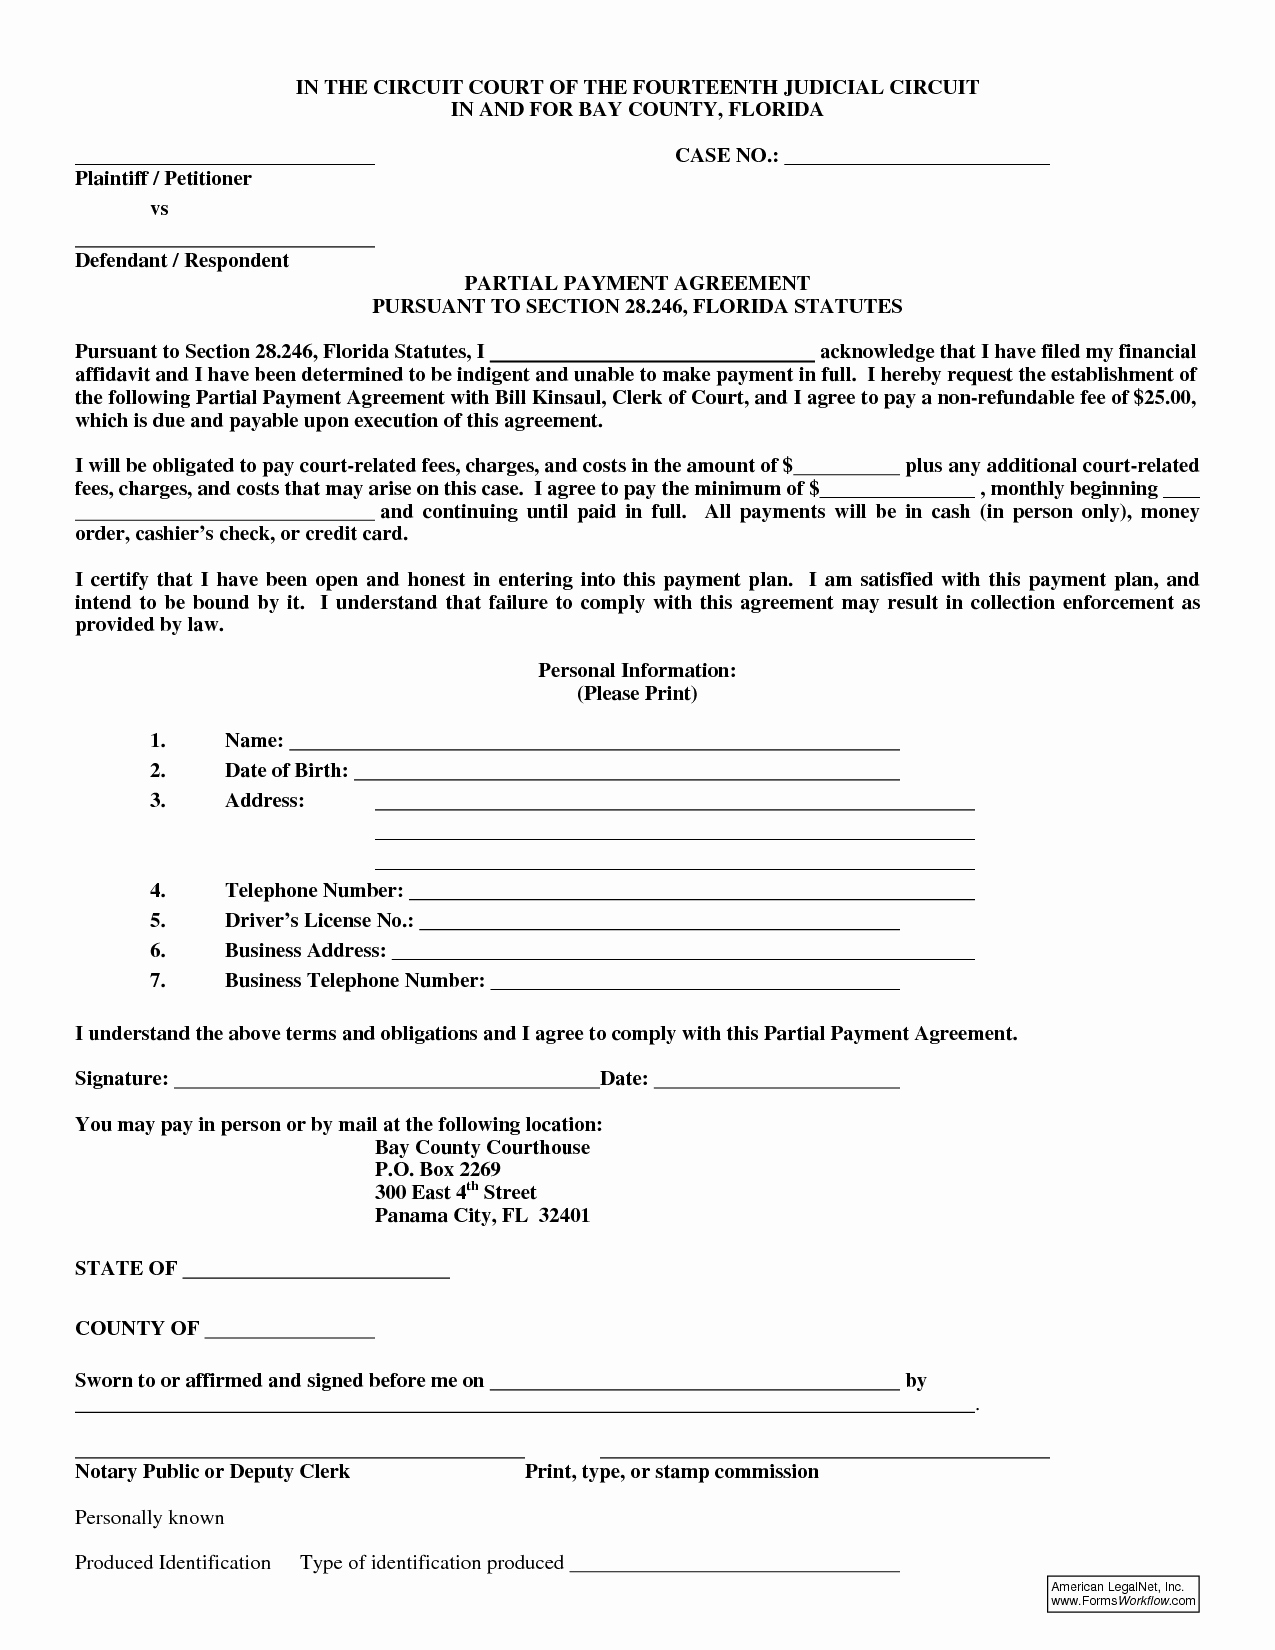 029 Payment Plan Agreement Template Ideas Arrangement Form within Credit Card Payment Plan Template